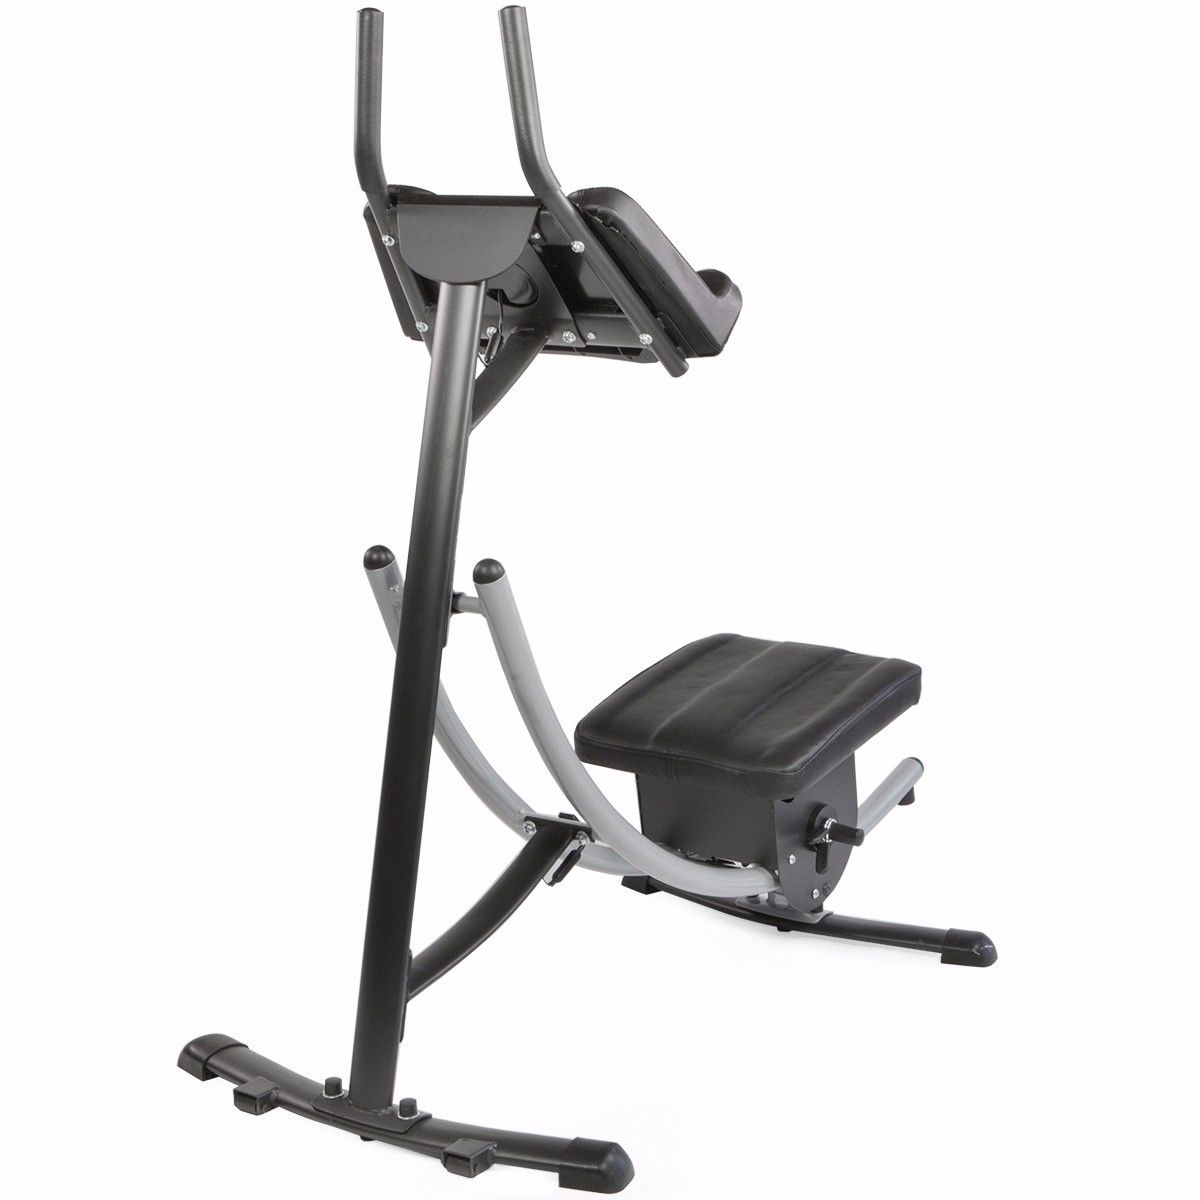 bc3a786b4f Abs Abdominal Exercise Machine Ab Crunch Coaster Fitness Body Muscle Workout  New